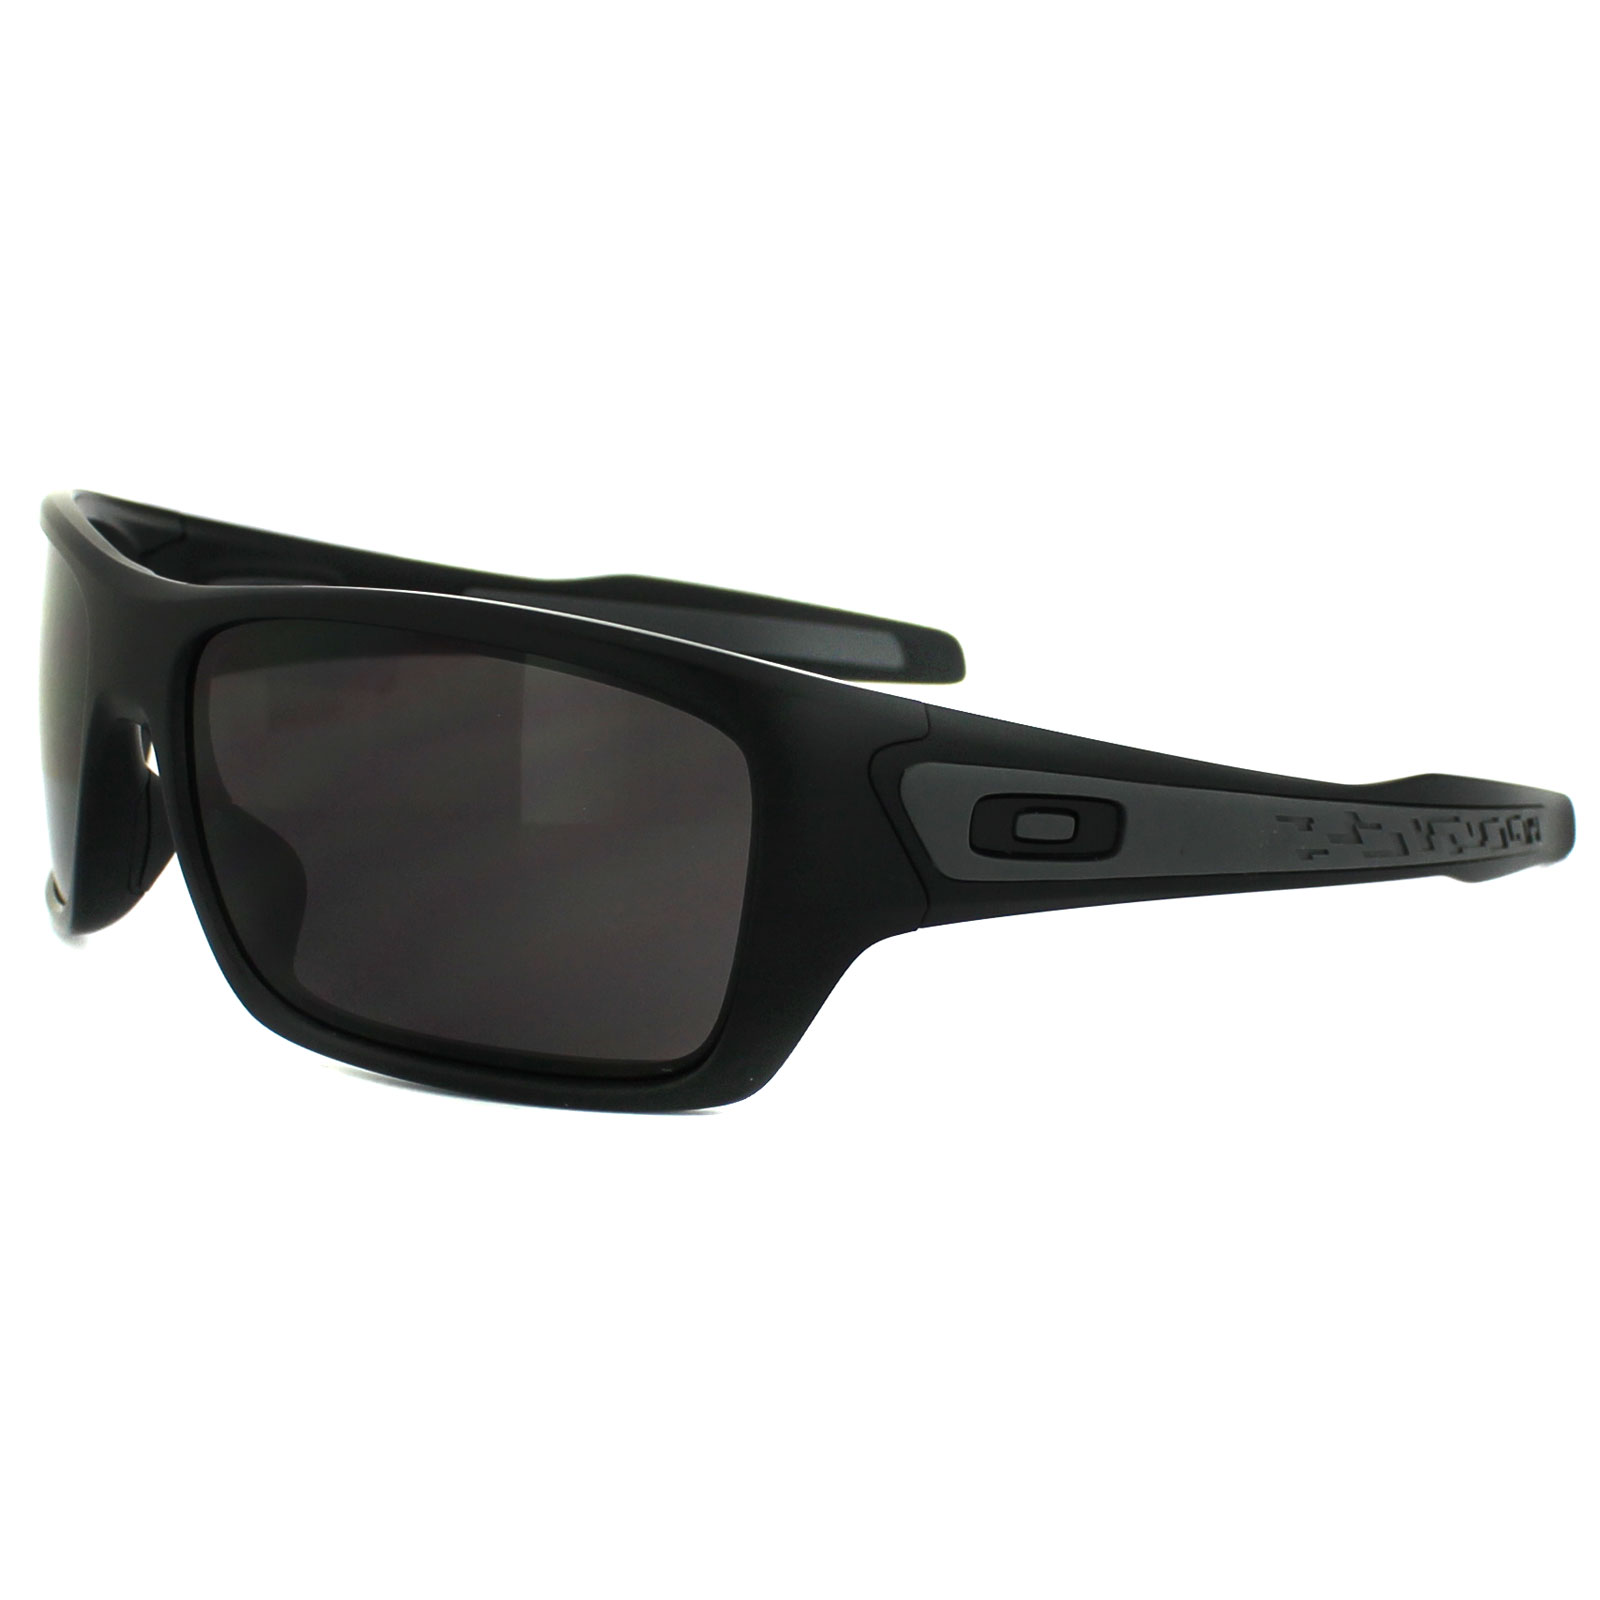 Oakley Official Cheap Oakley Sunglasses